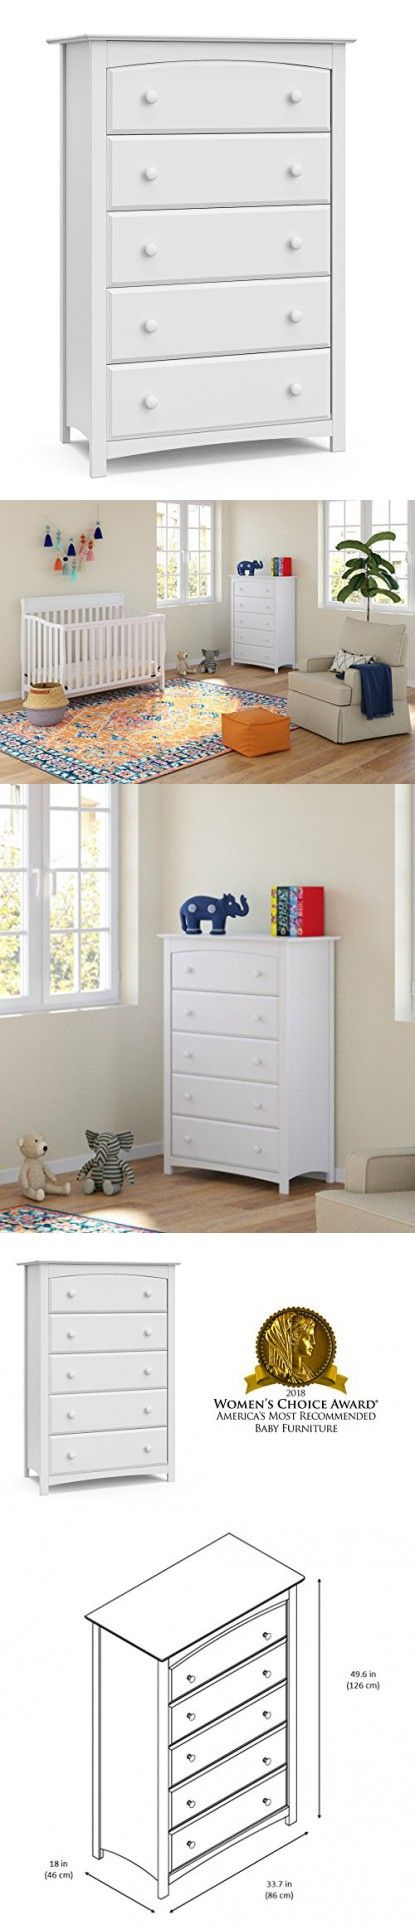 Storkcraft Kenton 5 Drawer Universal Dresser White Kids Bedroom Dresser With 5 Drawers Wood And Composite Construction Ideal For Nursery Toddlers Room Kids Bedroom Dressers Toddler Room Kids Bedroom [ 1925 x 415 Pixel ]